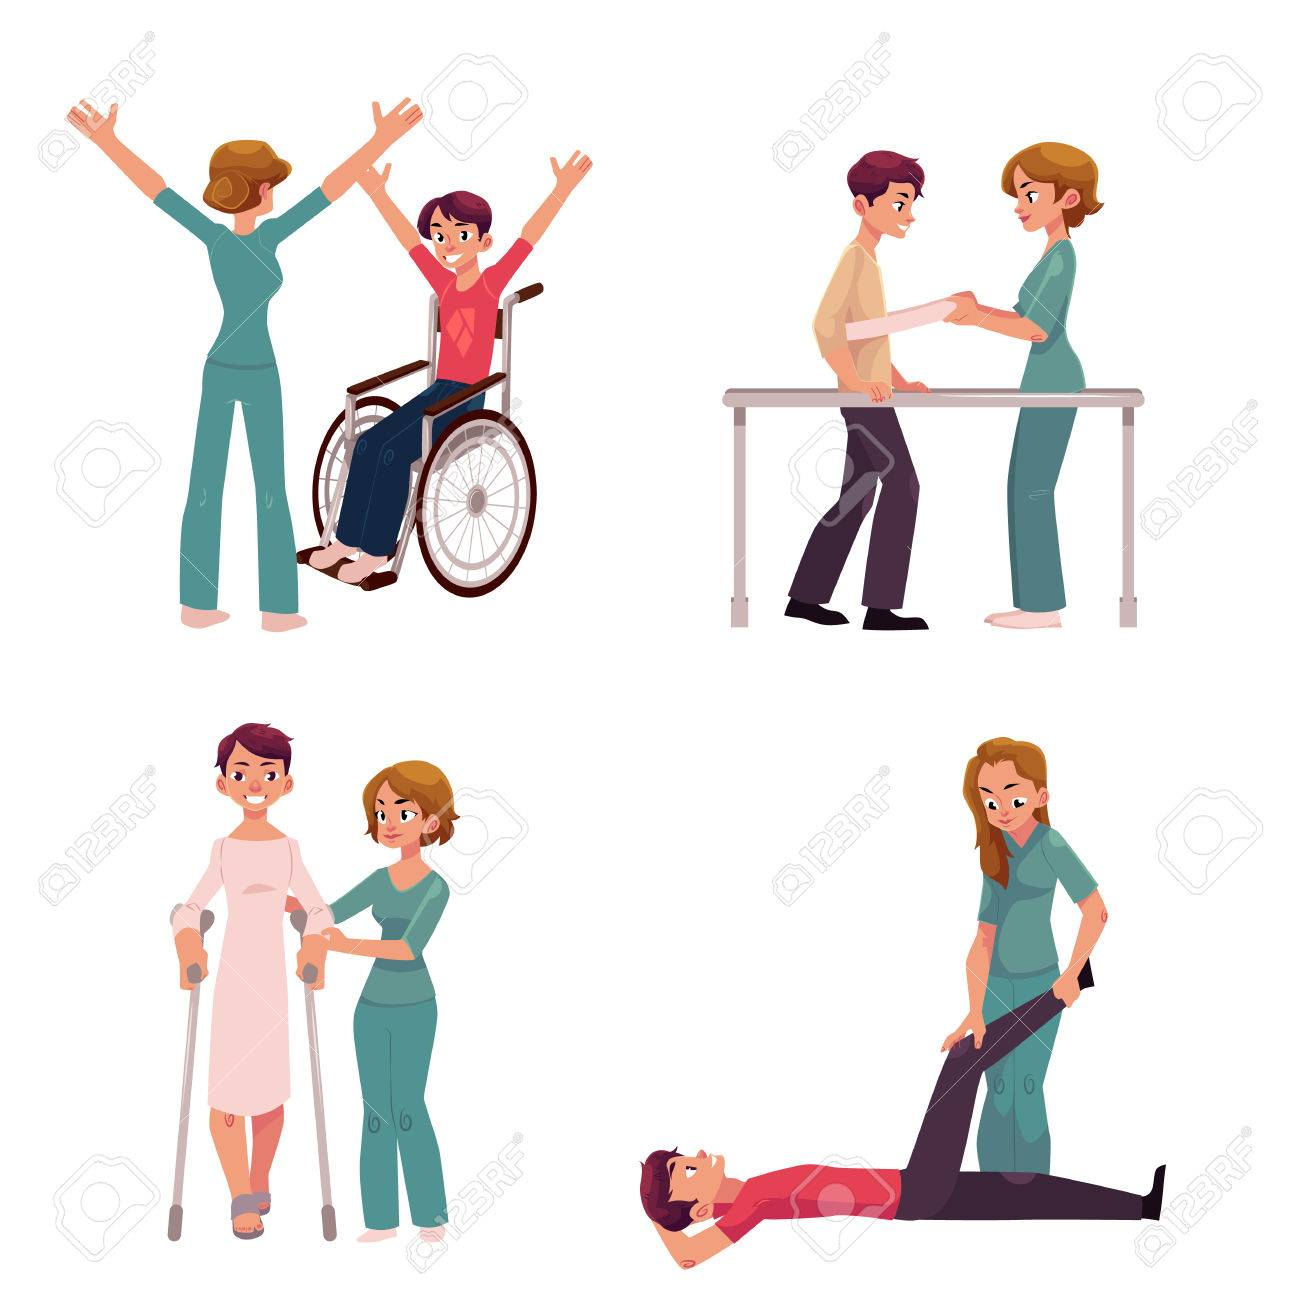 Medical rehabilitation, physical therapy activities, physiotherapist working with patients, cartoon vector illustration on white background. Medical rehabilitation, physical therapy, nurse, patients - 81477228